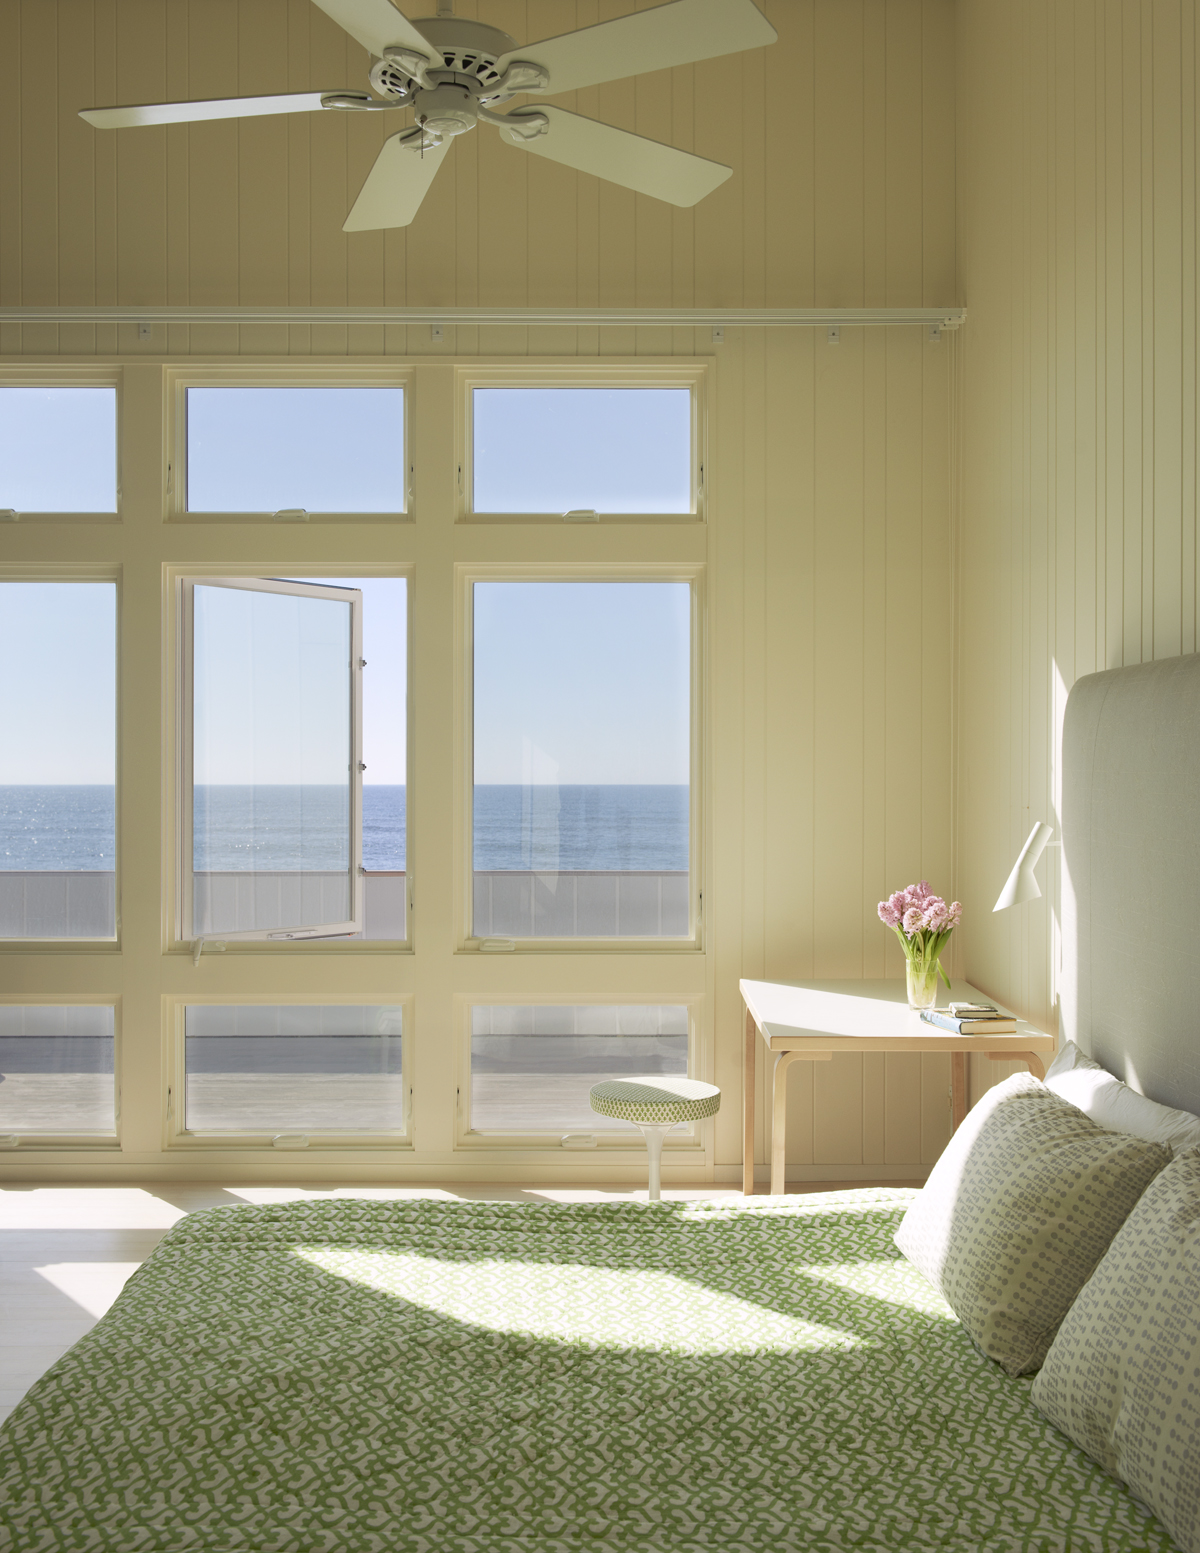 Fire Island beach house -- bedroom with ocean view